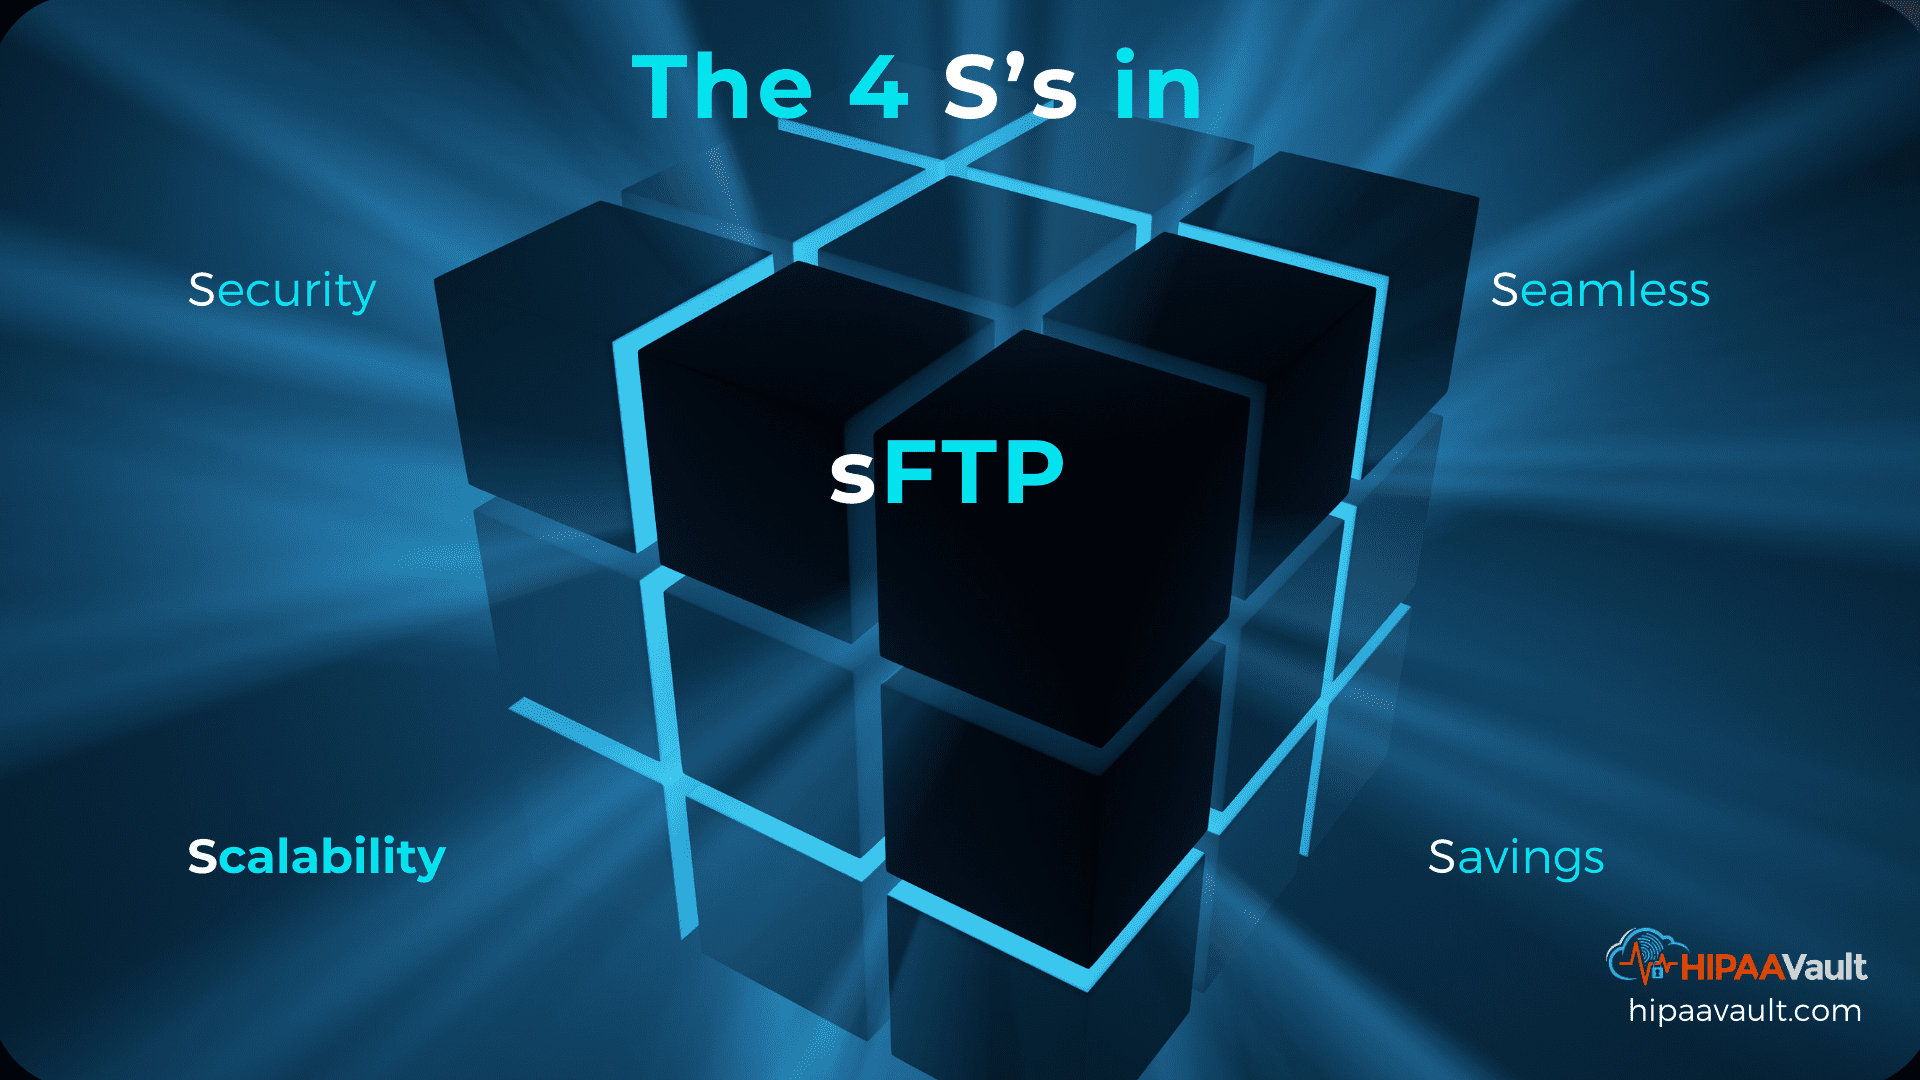 The Benefits of an sFTP Server